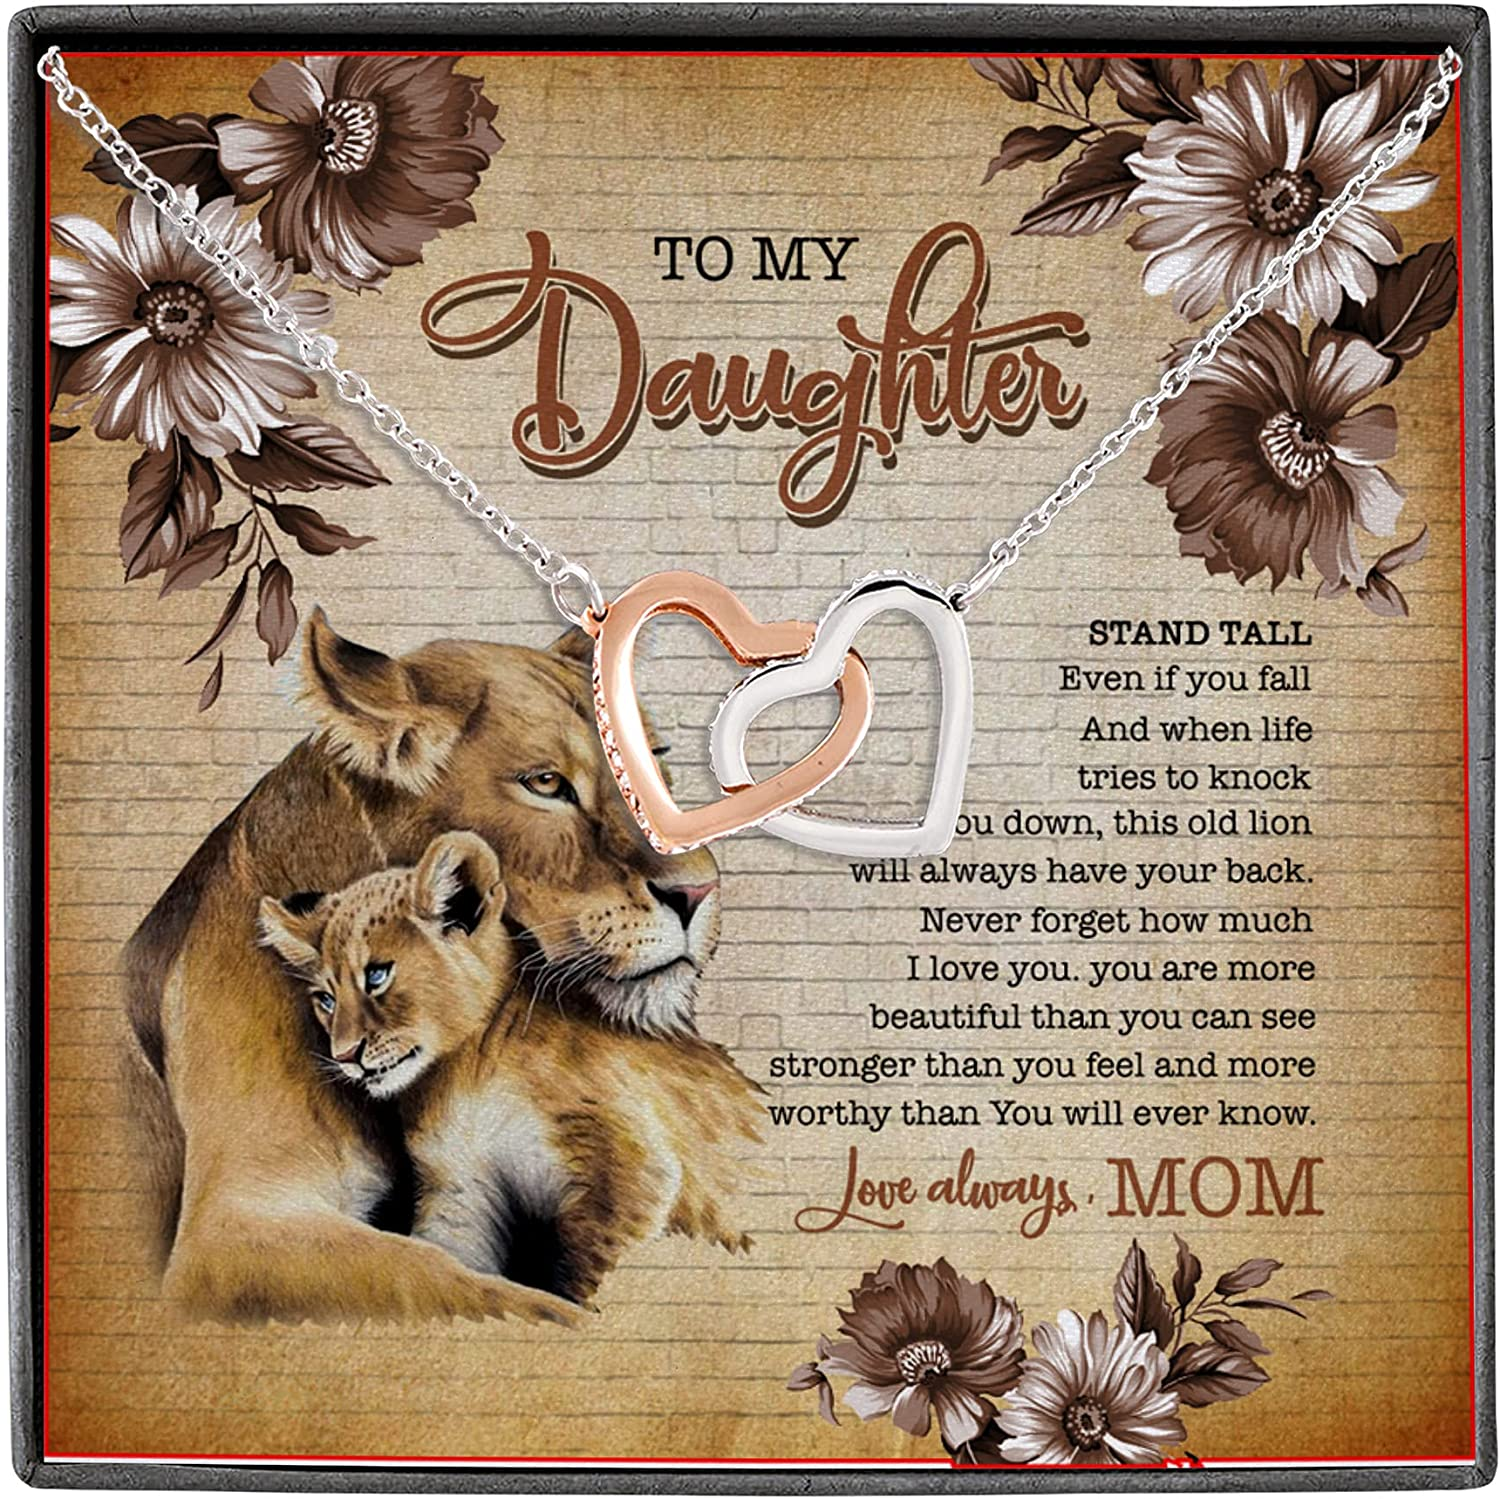 To Daughter Stand Tall Life Tries to Knock You Down This Old Lion Have Your Back Interlocking Hearts Necklace